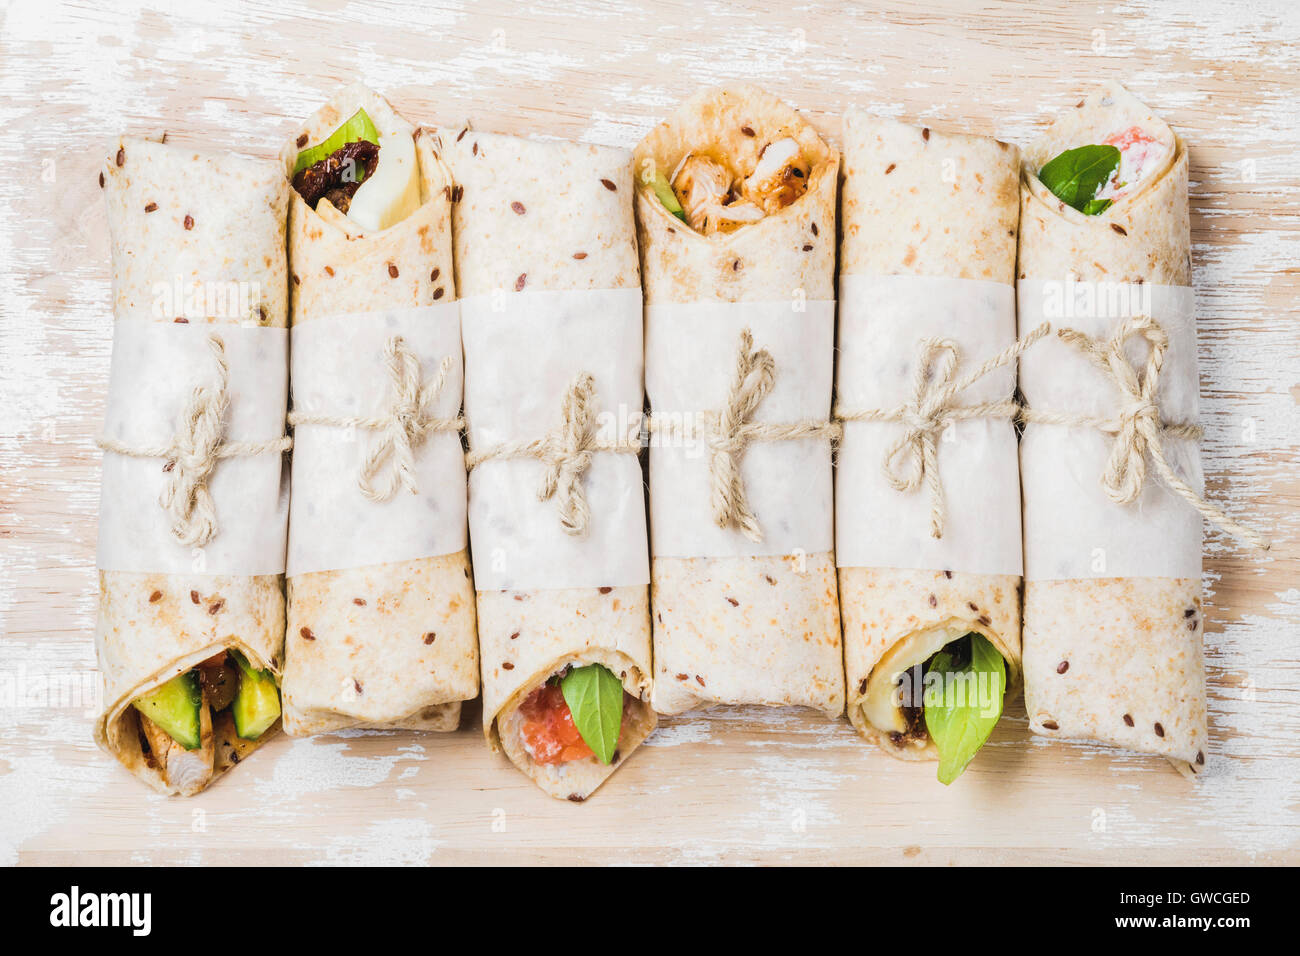 Tortilla wraps with various fillings on shabby white painted wooden background, top view, horizontal composition. - Stock Image